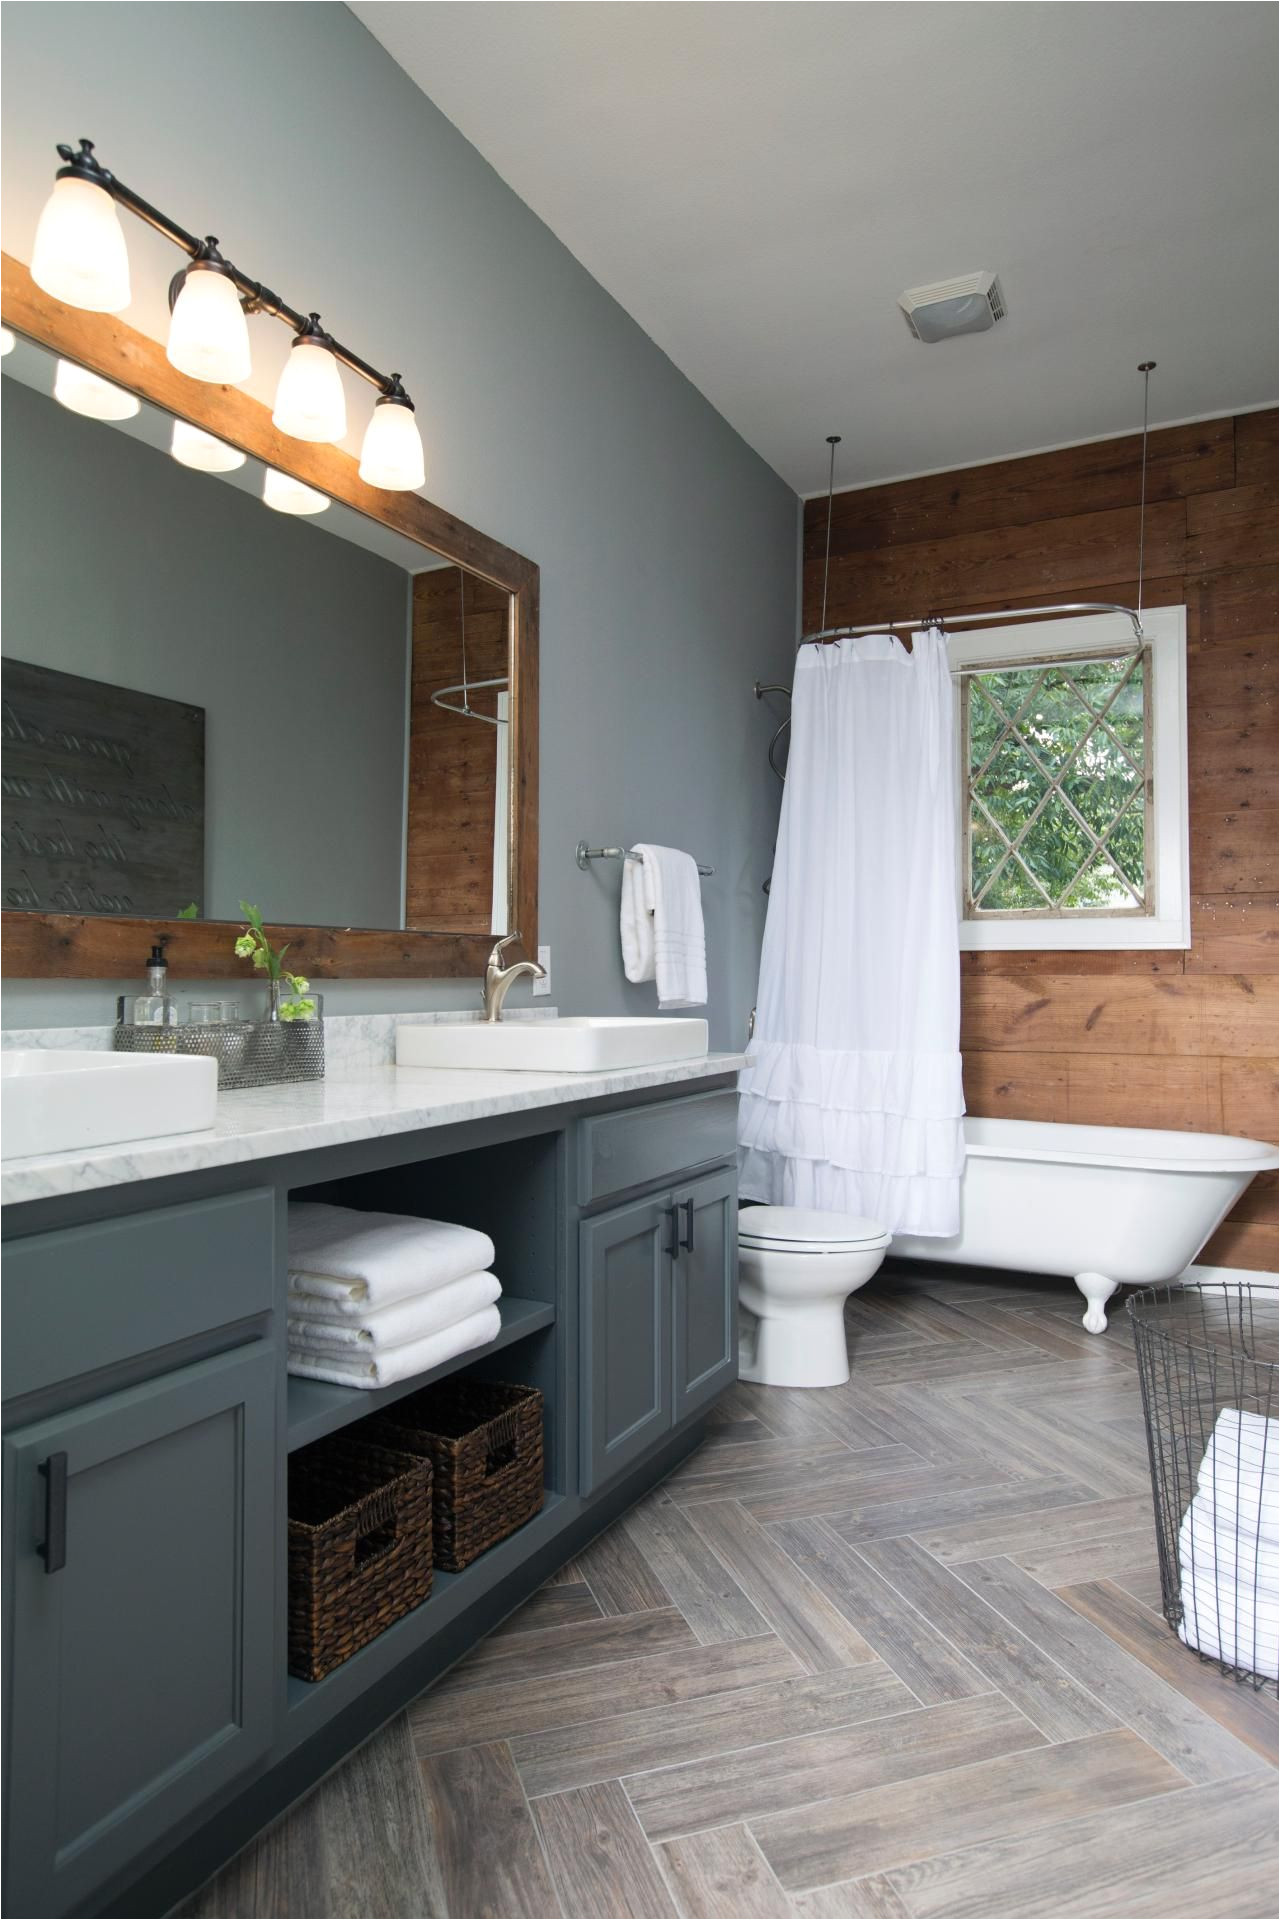 chip and joanna gaines decked out this master bathroom with new gray paint and a shiplap accent wall